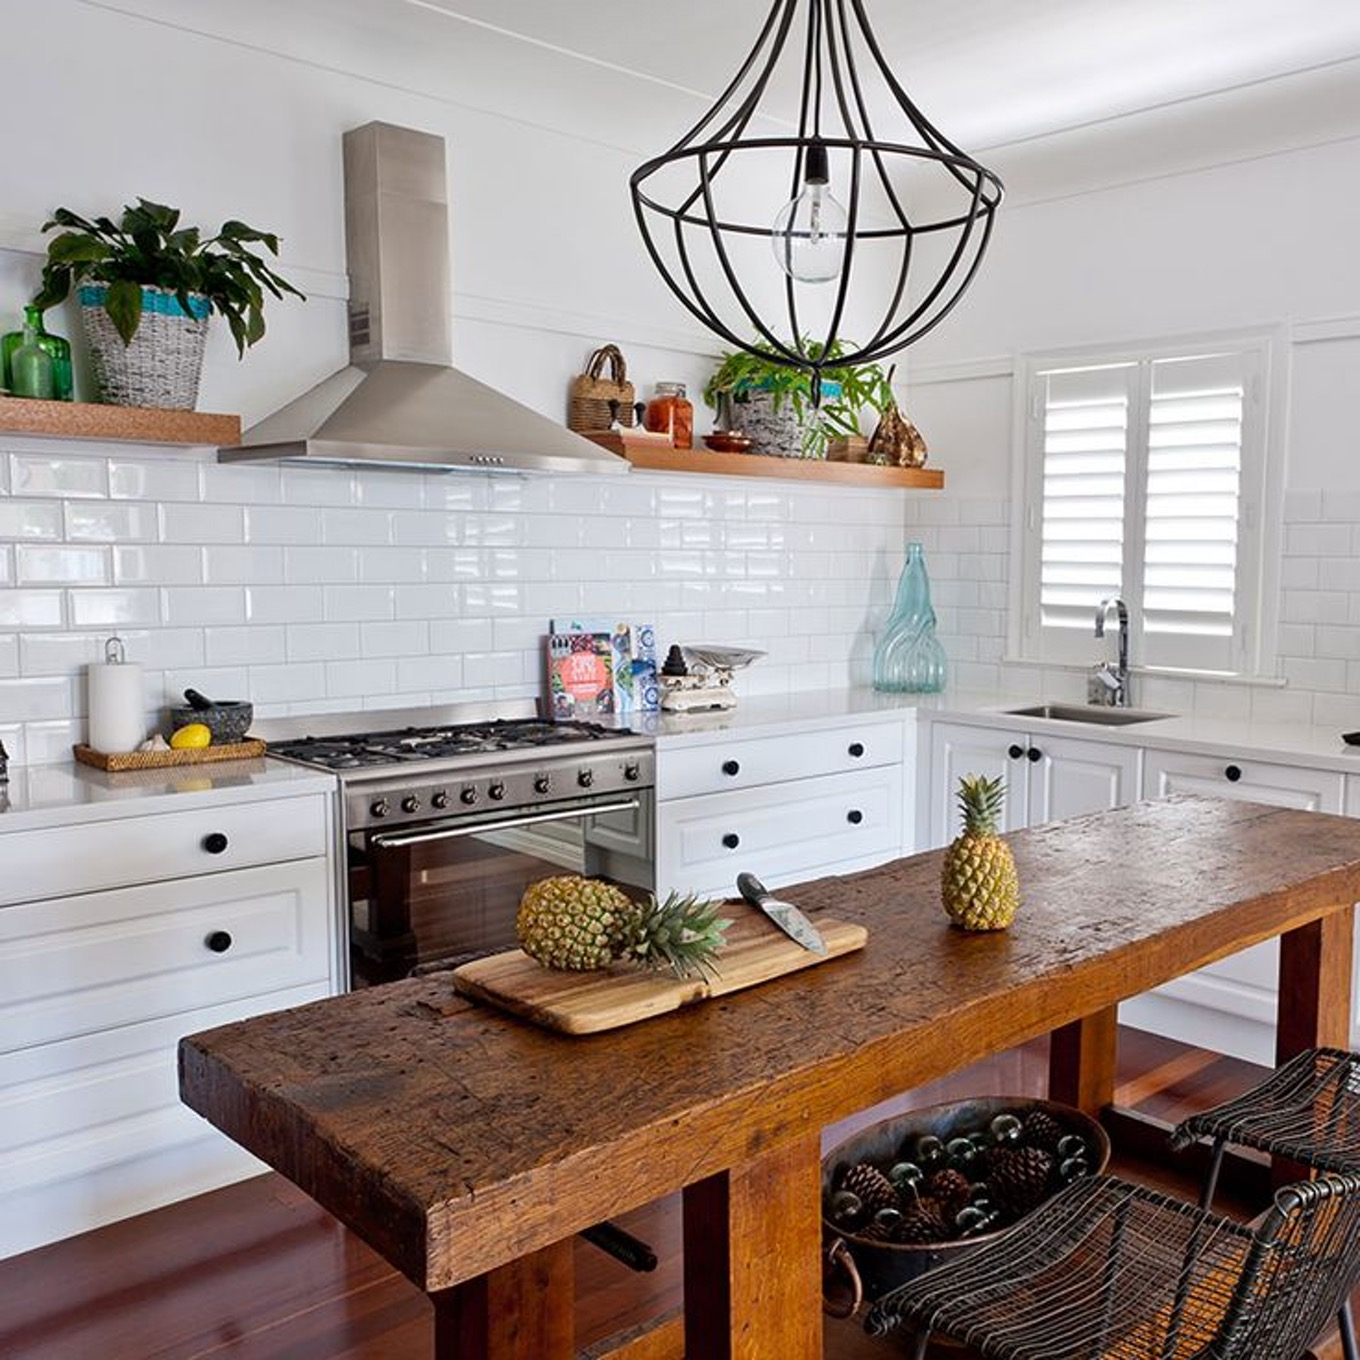 Enthralling Narrow Kitchen Island Of Table Small Ideas ... on narrow kitchen storage, narrow kitchen shelves, narrow kitchen lighting, narrow kitchen counters, narrow kitchen cabinets,